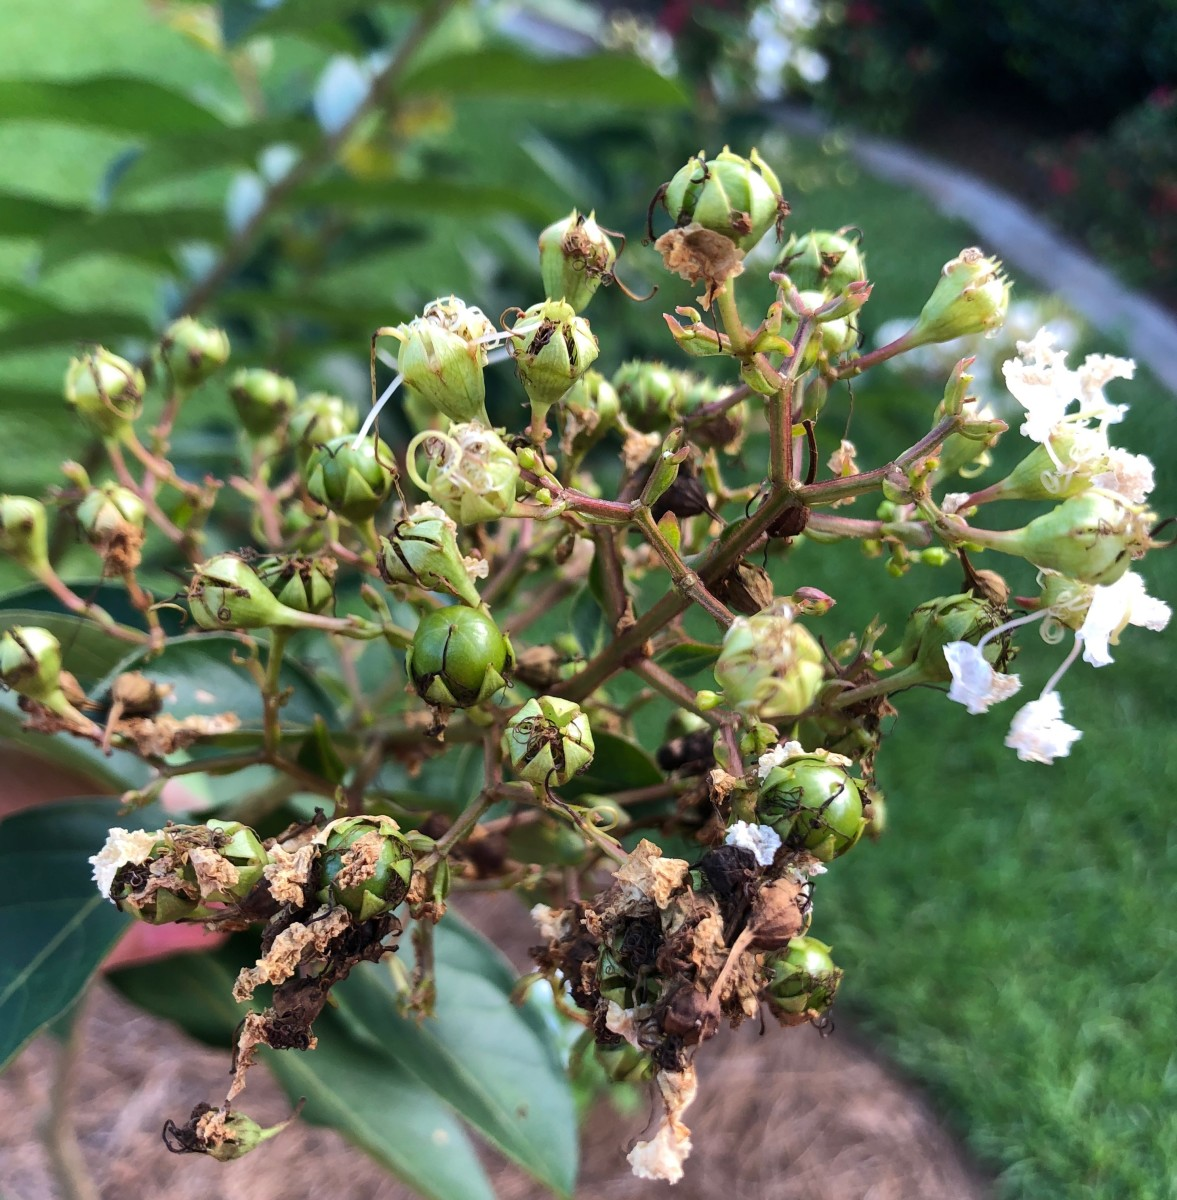 It's time to remove those spent blooms. Once these green seed pods turn brown, it will be too late.